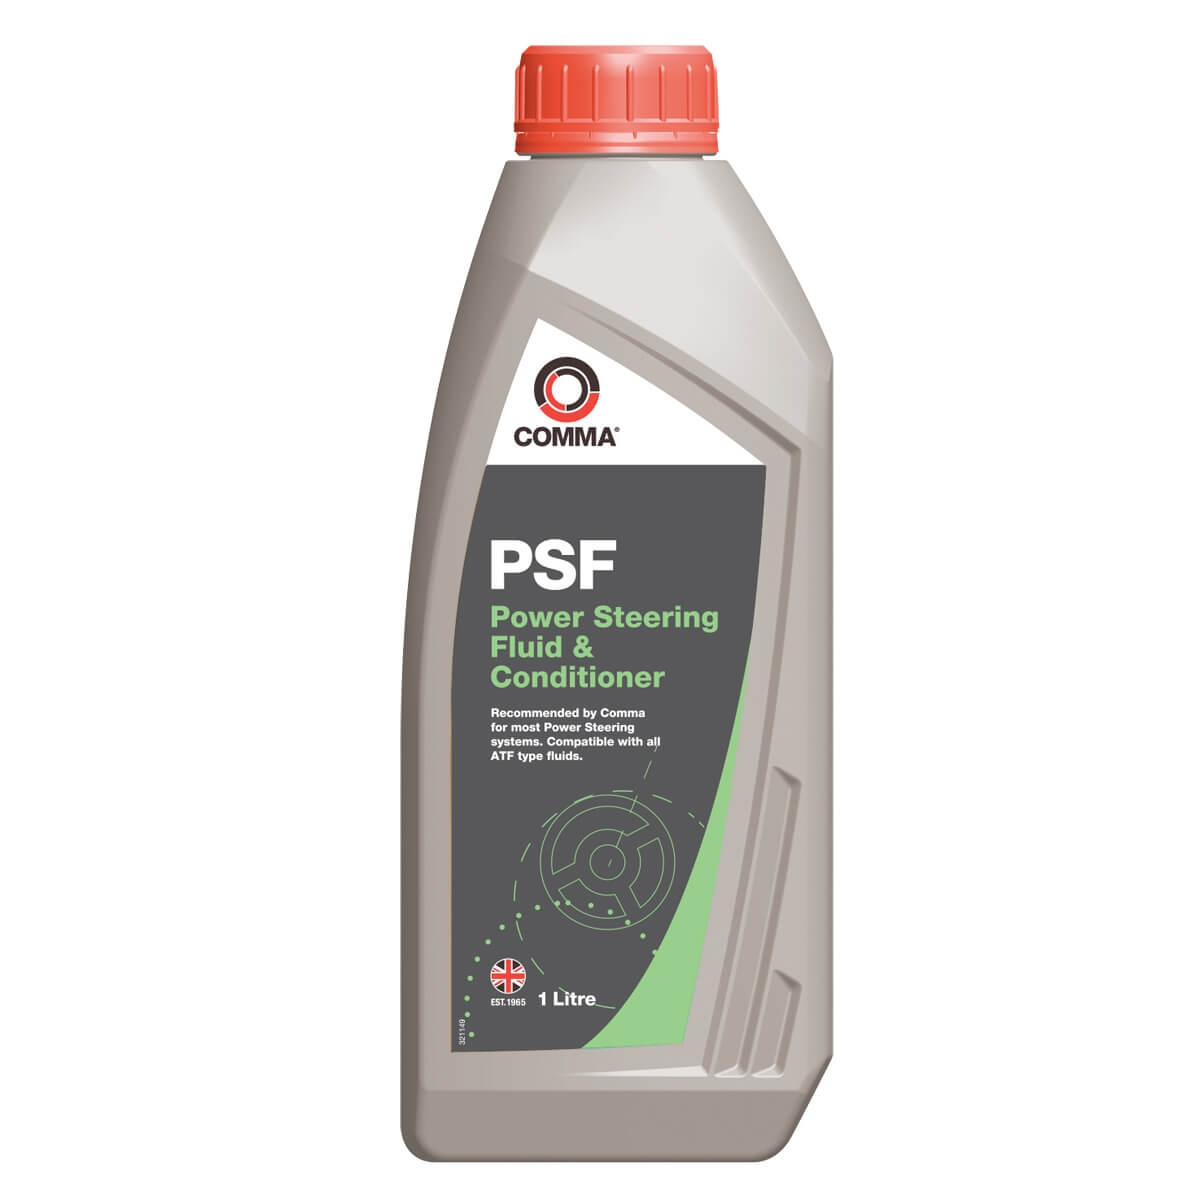 DS DS5 Power Steering Oil